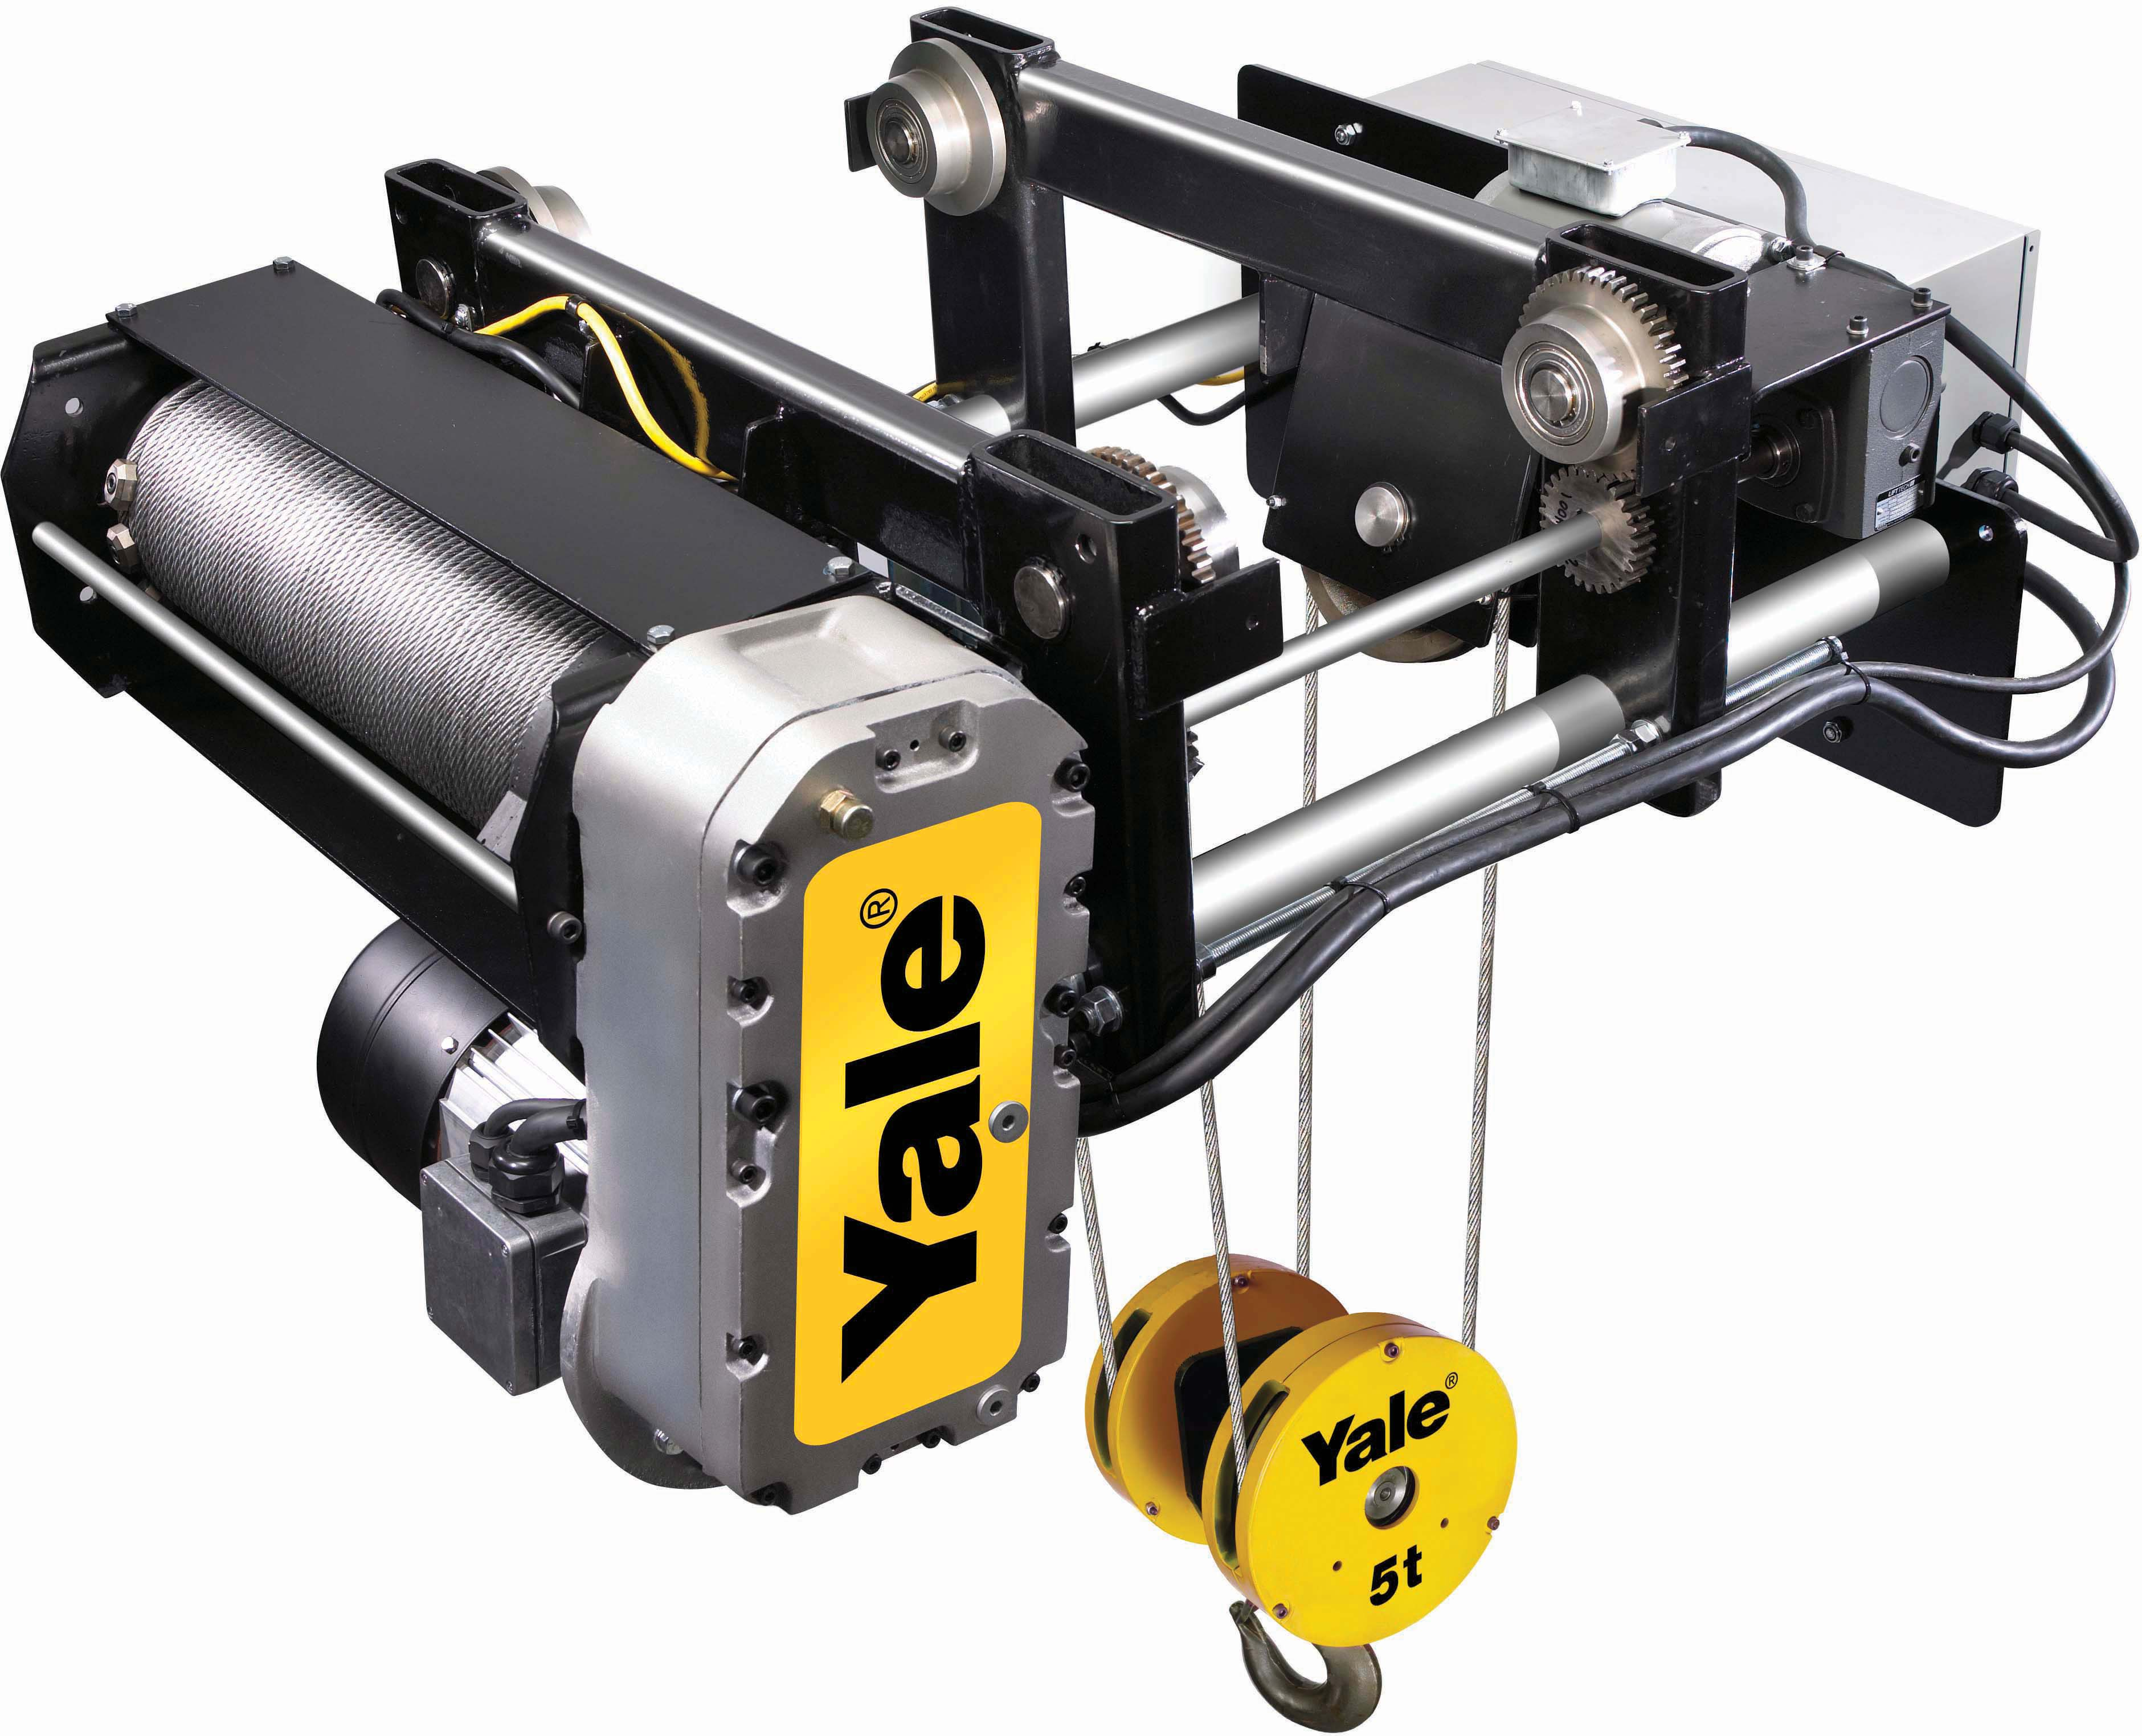 find a distributor blog upper block limit switch now standard onupper block limit switch now standard on yale global king and shaw box world series